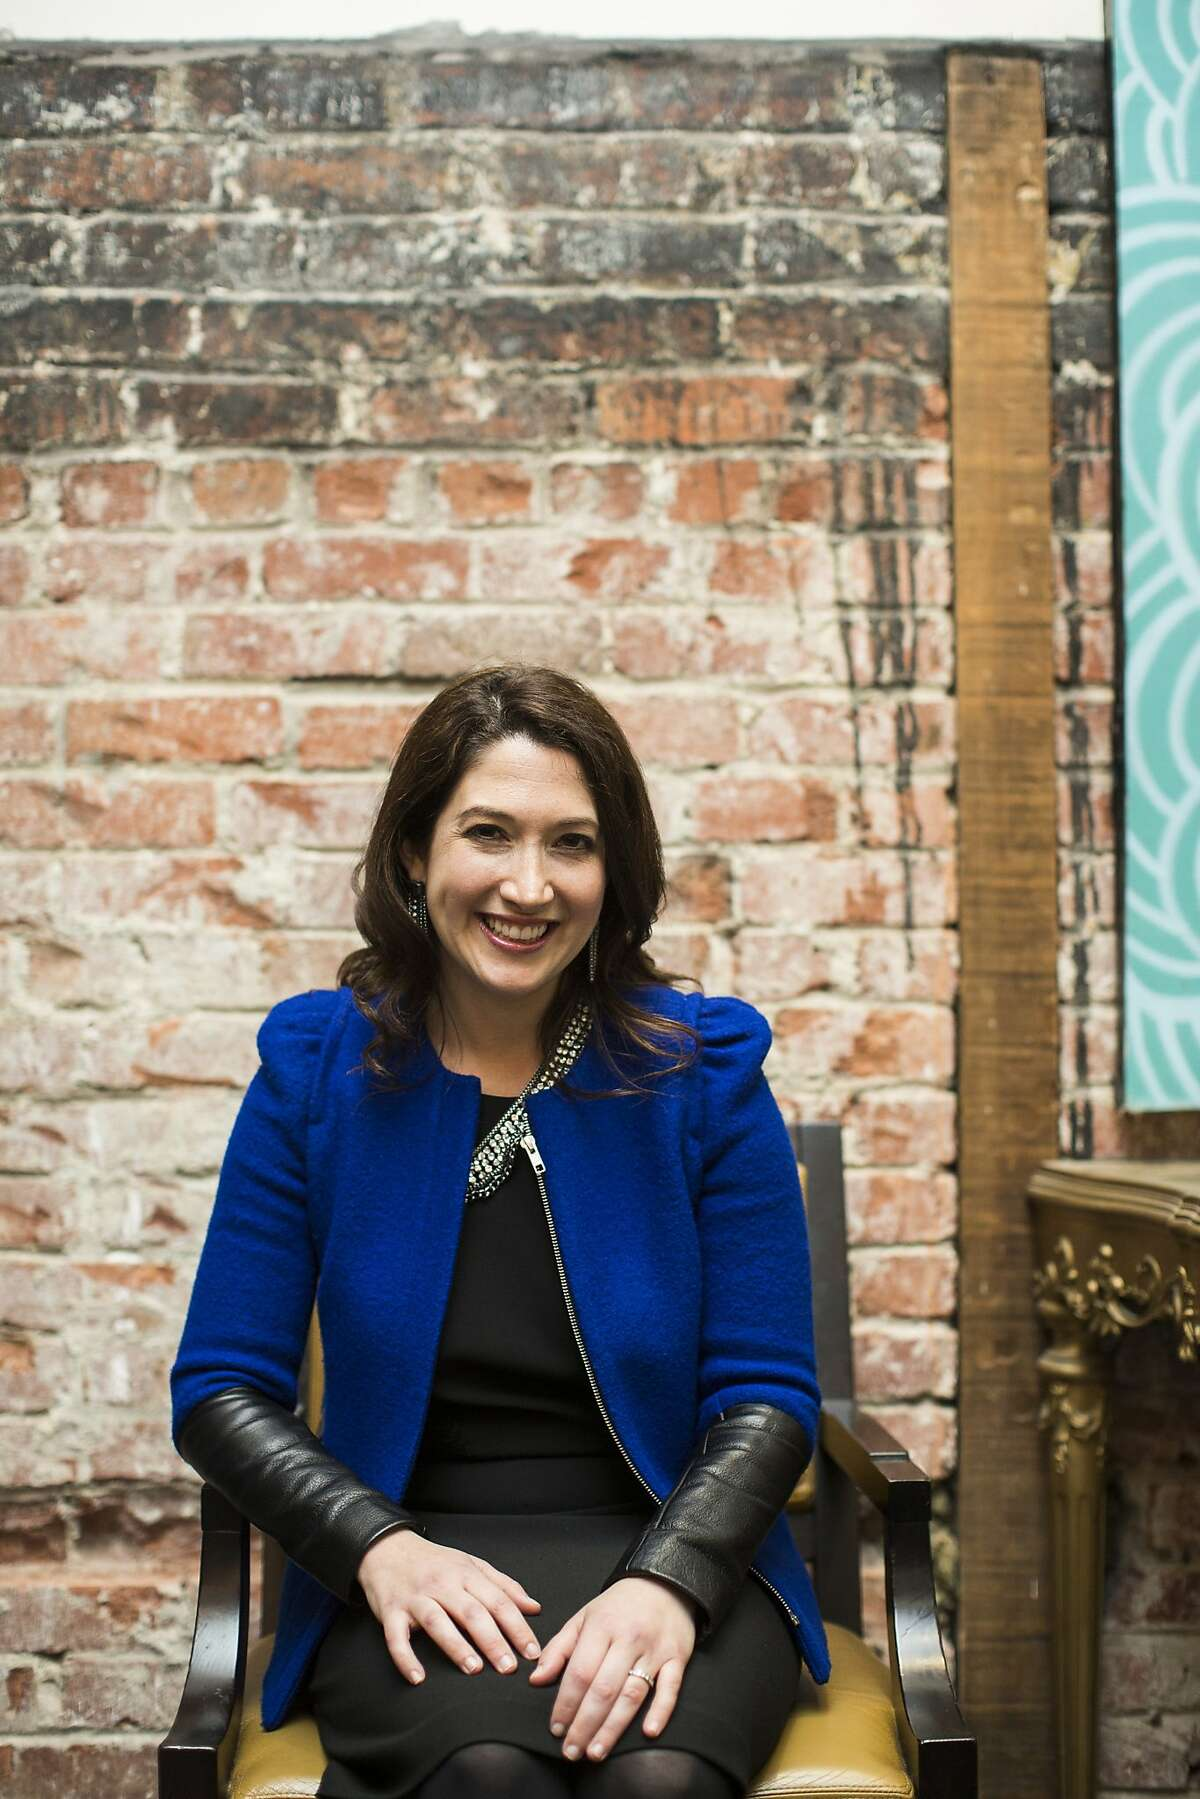 Randi Zuckerberg, sister of Facebook founder Mark Zuckerberg, CEO of Zuckerberg Media and Editor-in-Chief of Dot Complicated, poses for a photo before speaking at an event organized by Birthright Israel Foundation at Firehouse 8 in San Francisco, Calif. on Thursday, Feb. 20, 2014.